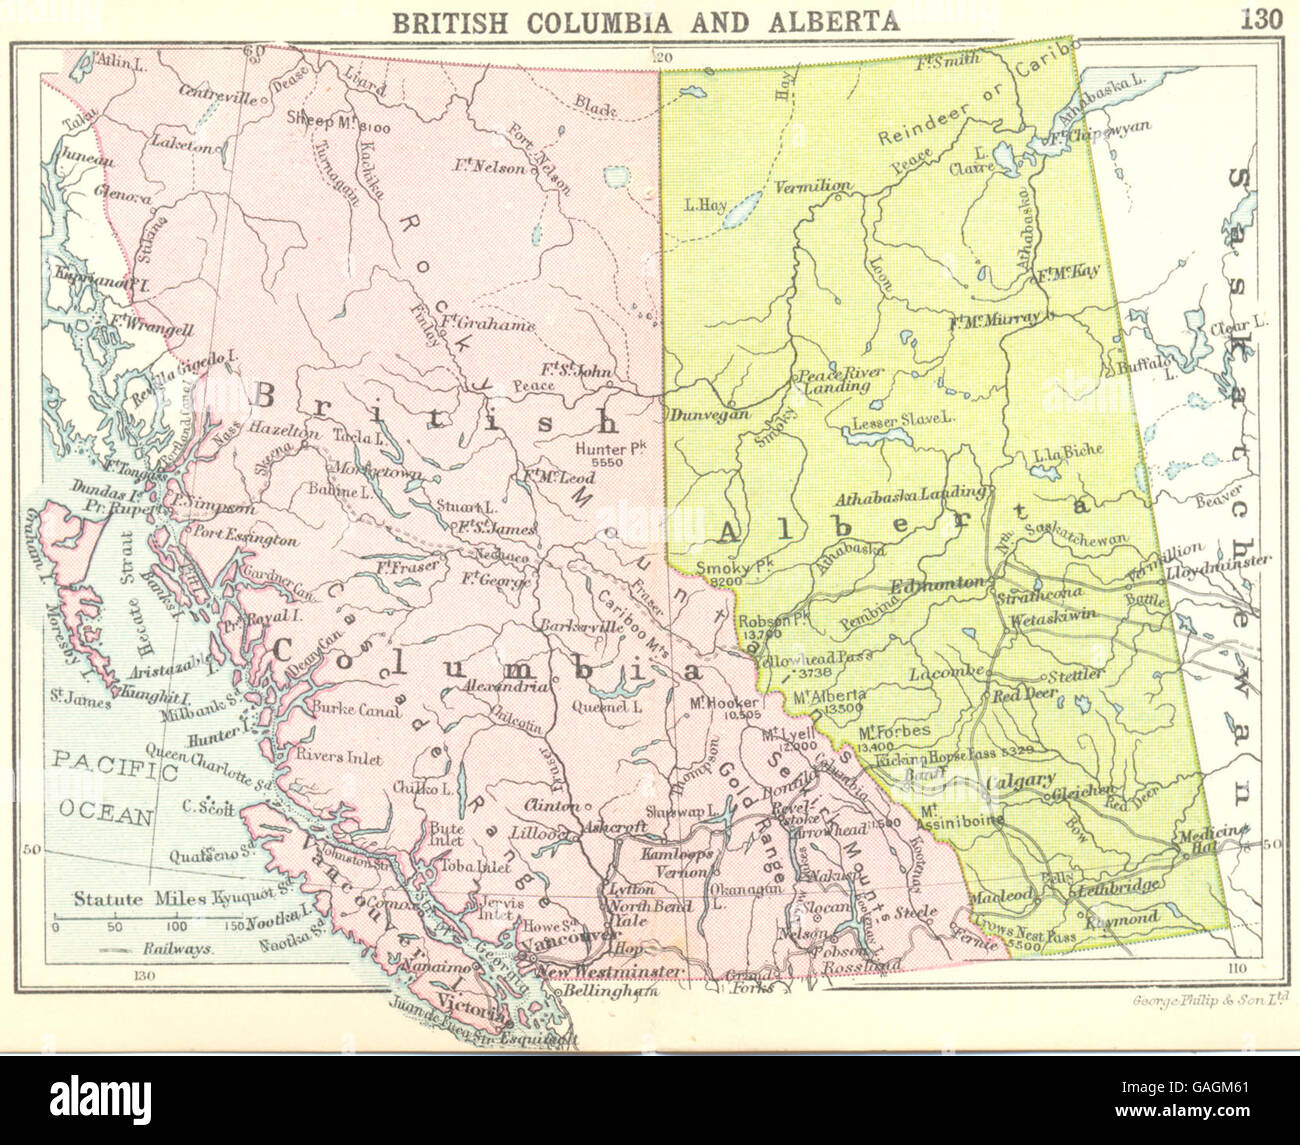 Small Map Of Canada.Canada British Columbia And Alberta Small Map 1912 Stock Photo